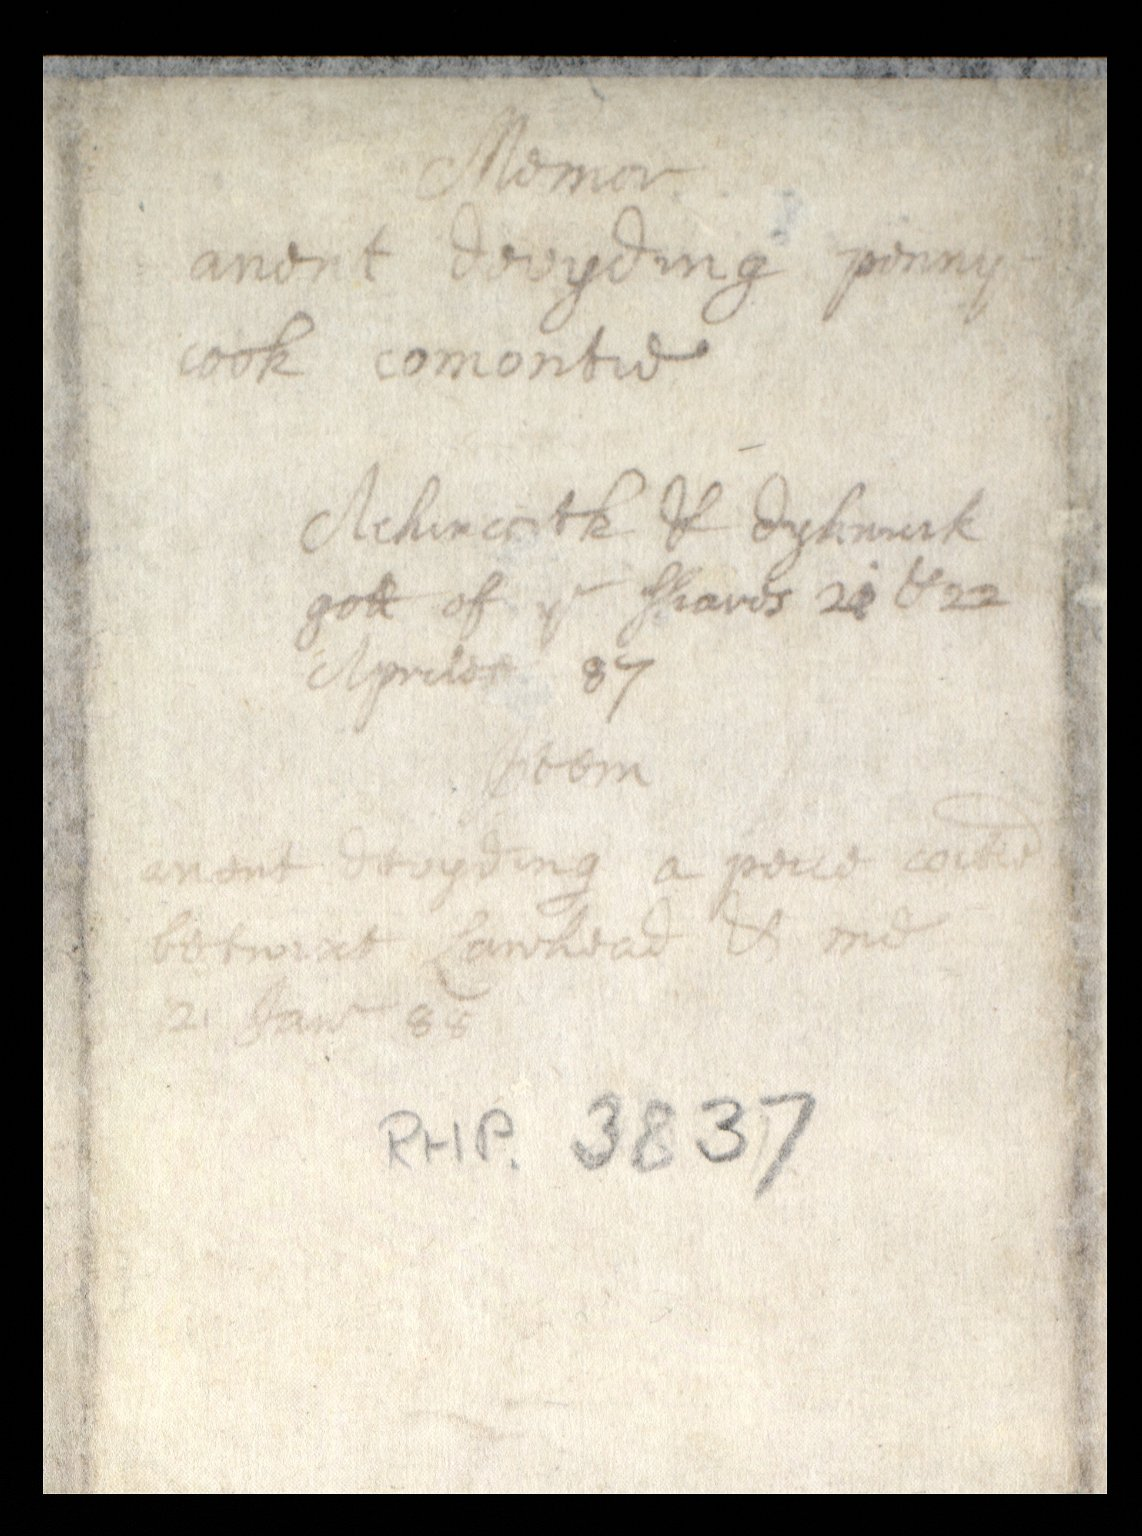 Memoir anent devyding penny cook commontie. Auchincorth & dykniuk gott of ye Shaws 21 & 22 April 87 [2 of 2]